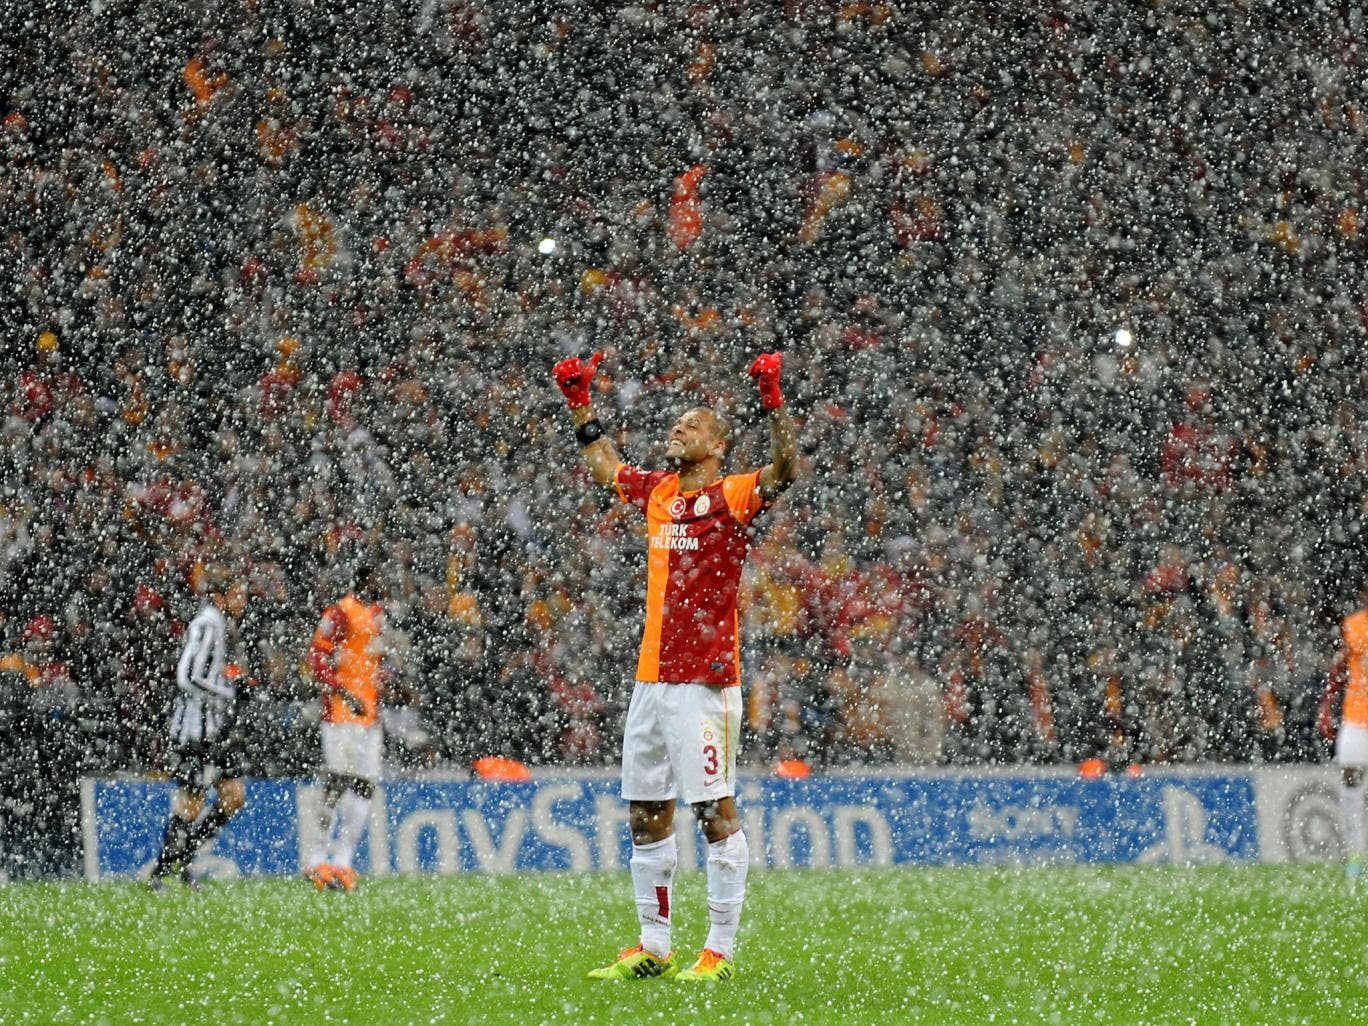 Galatasaray midfielder Felipe Melo raises his arms as the snow falls in Istanbul